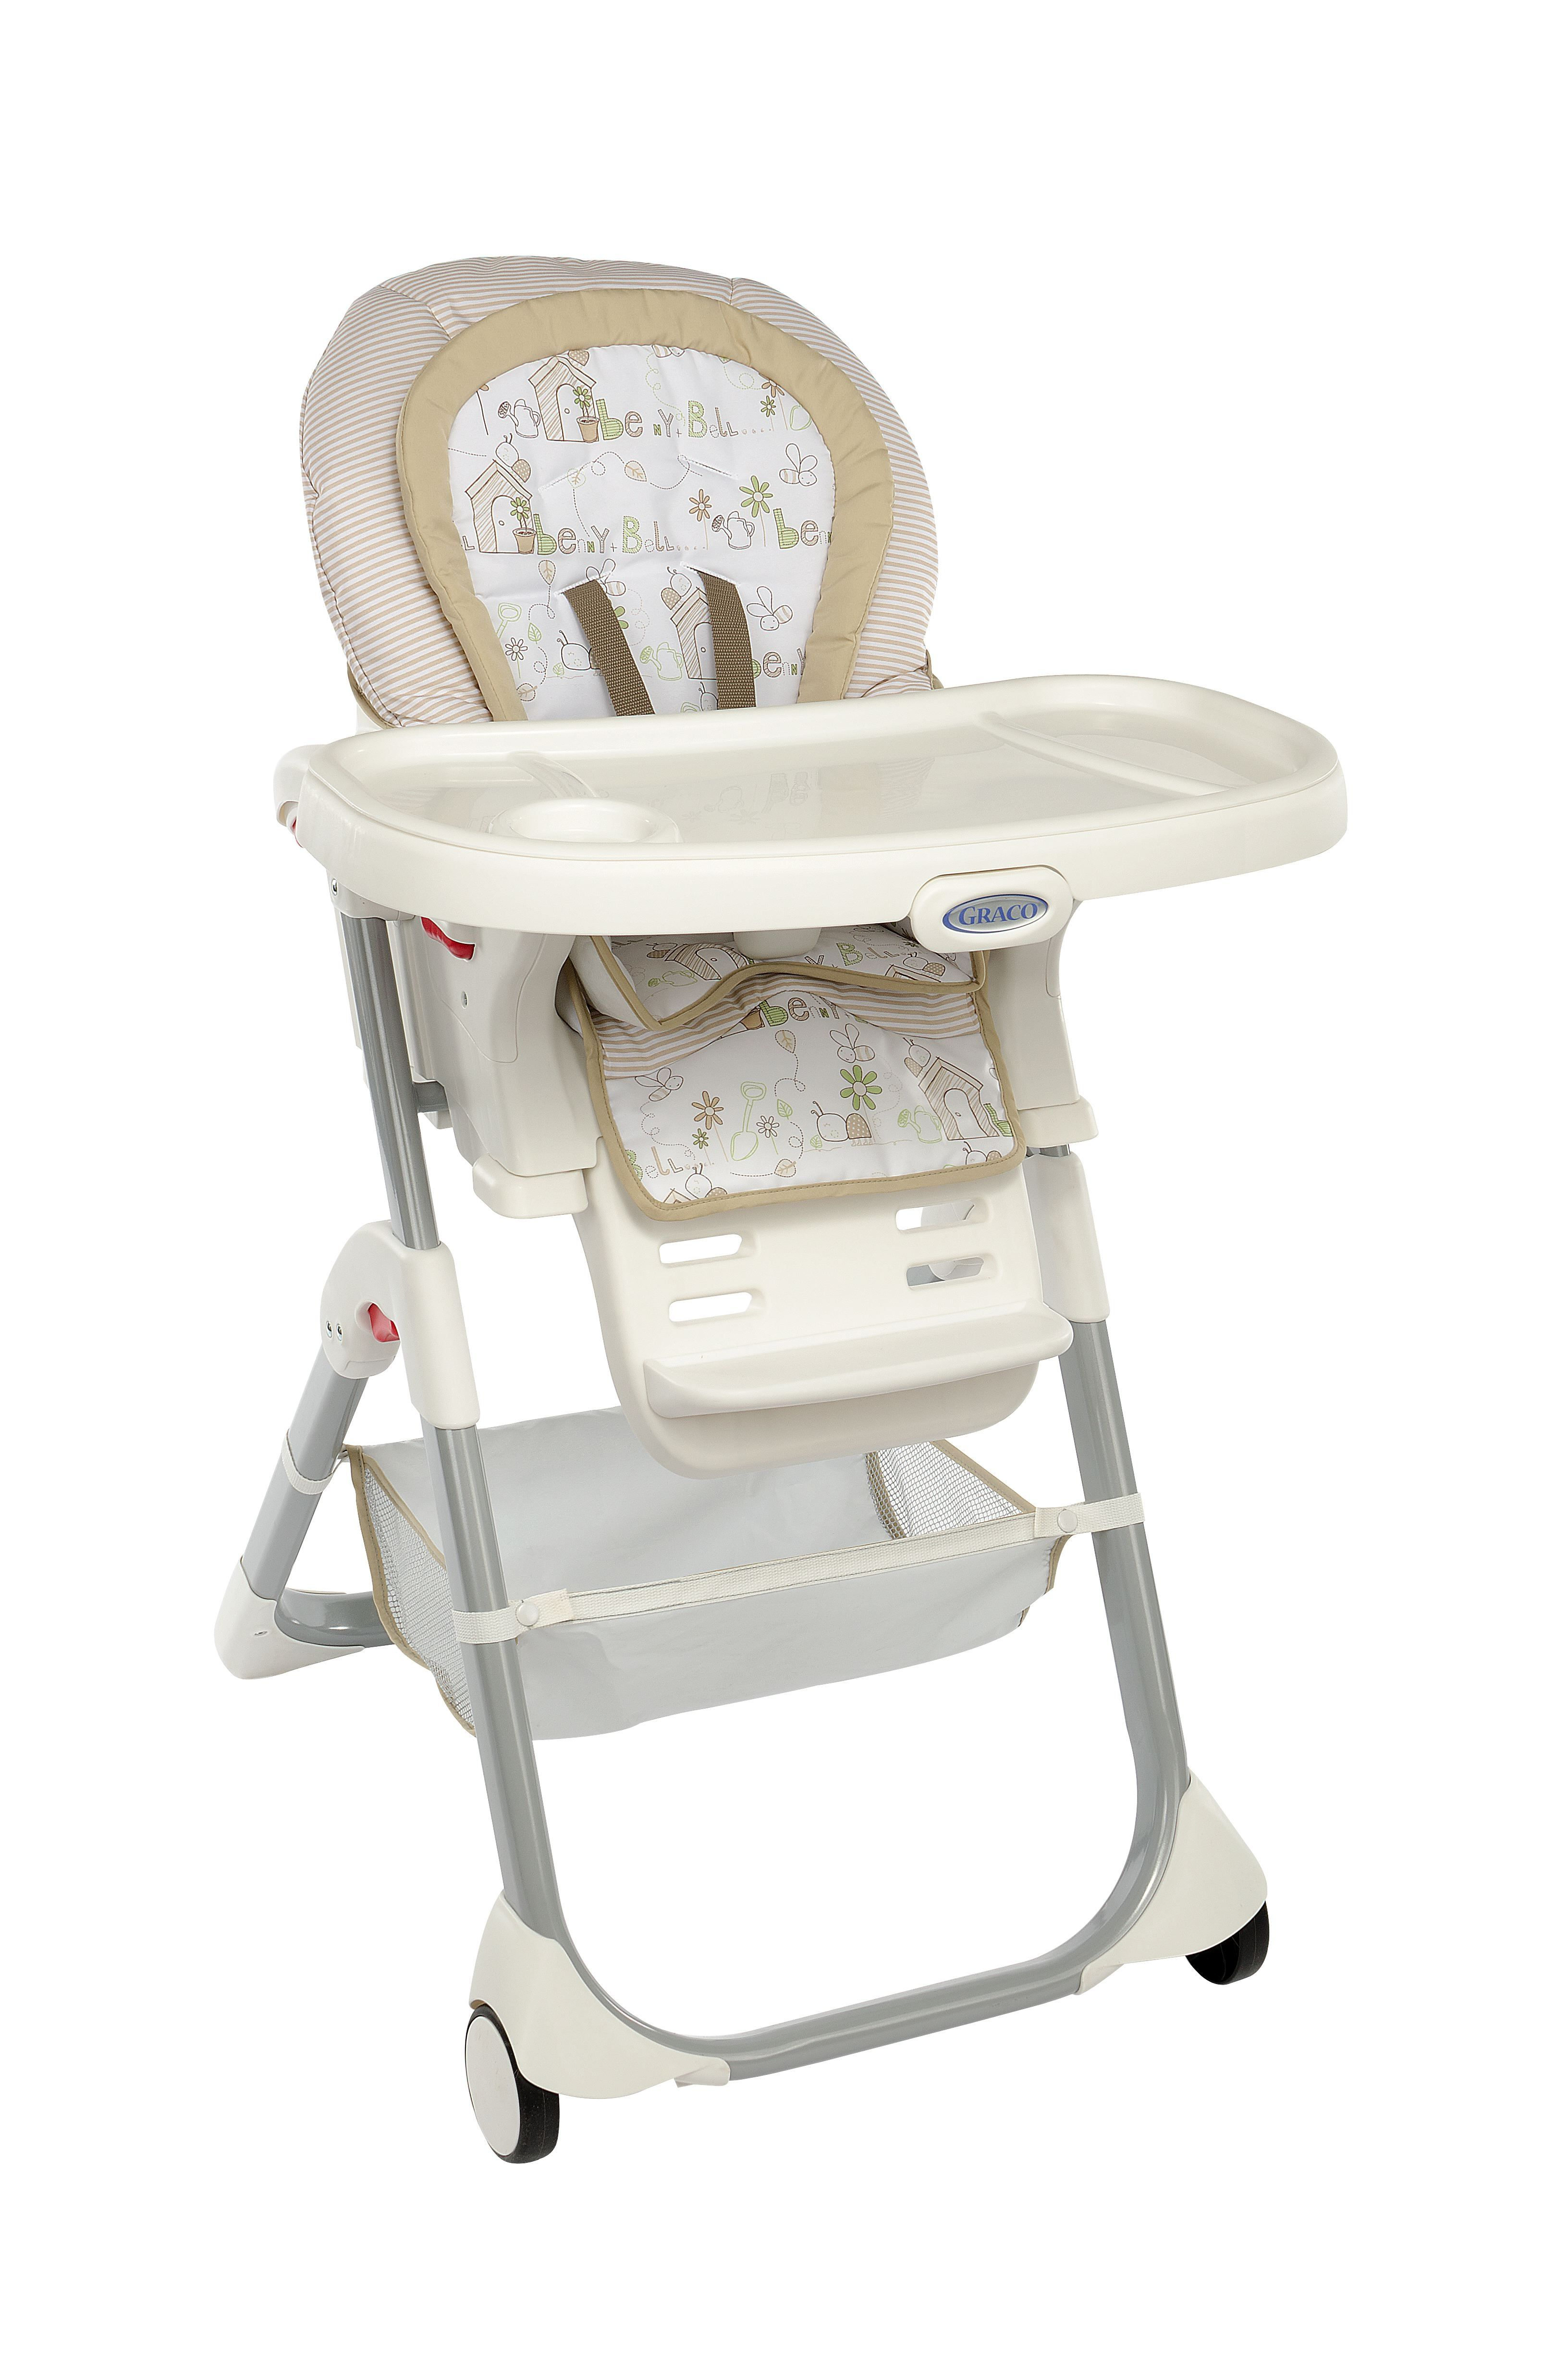 Graco High Chair 5 Point Harness